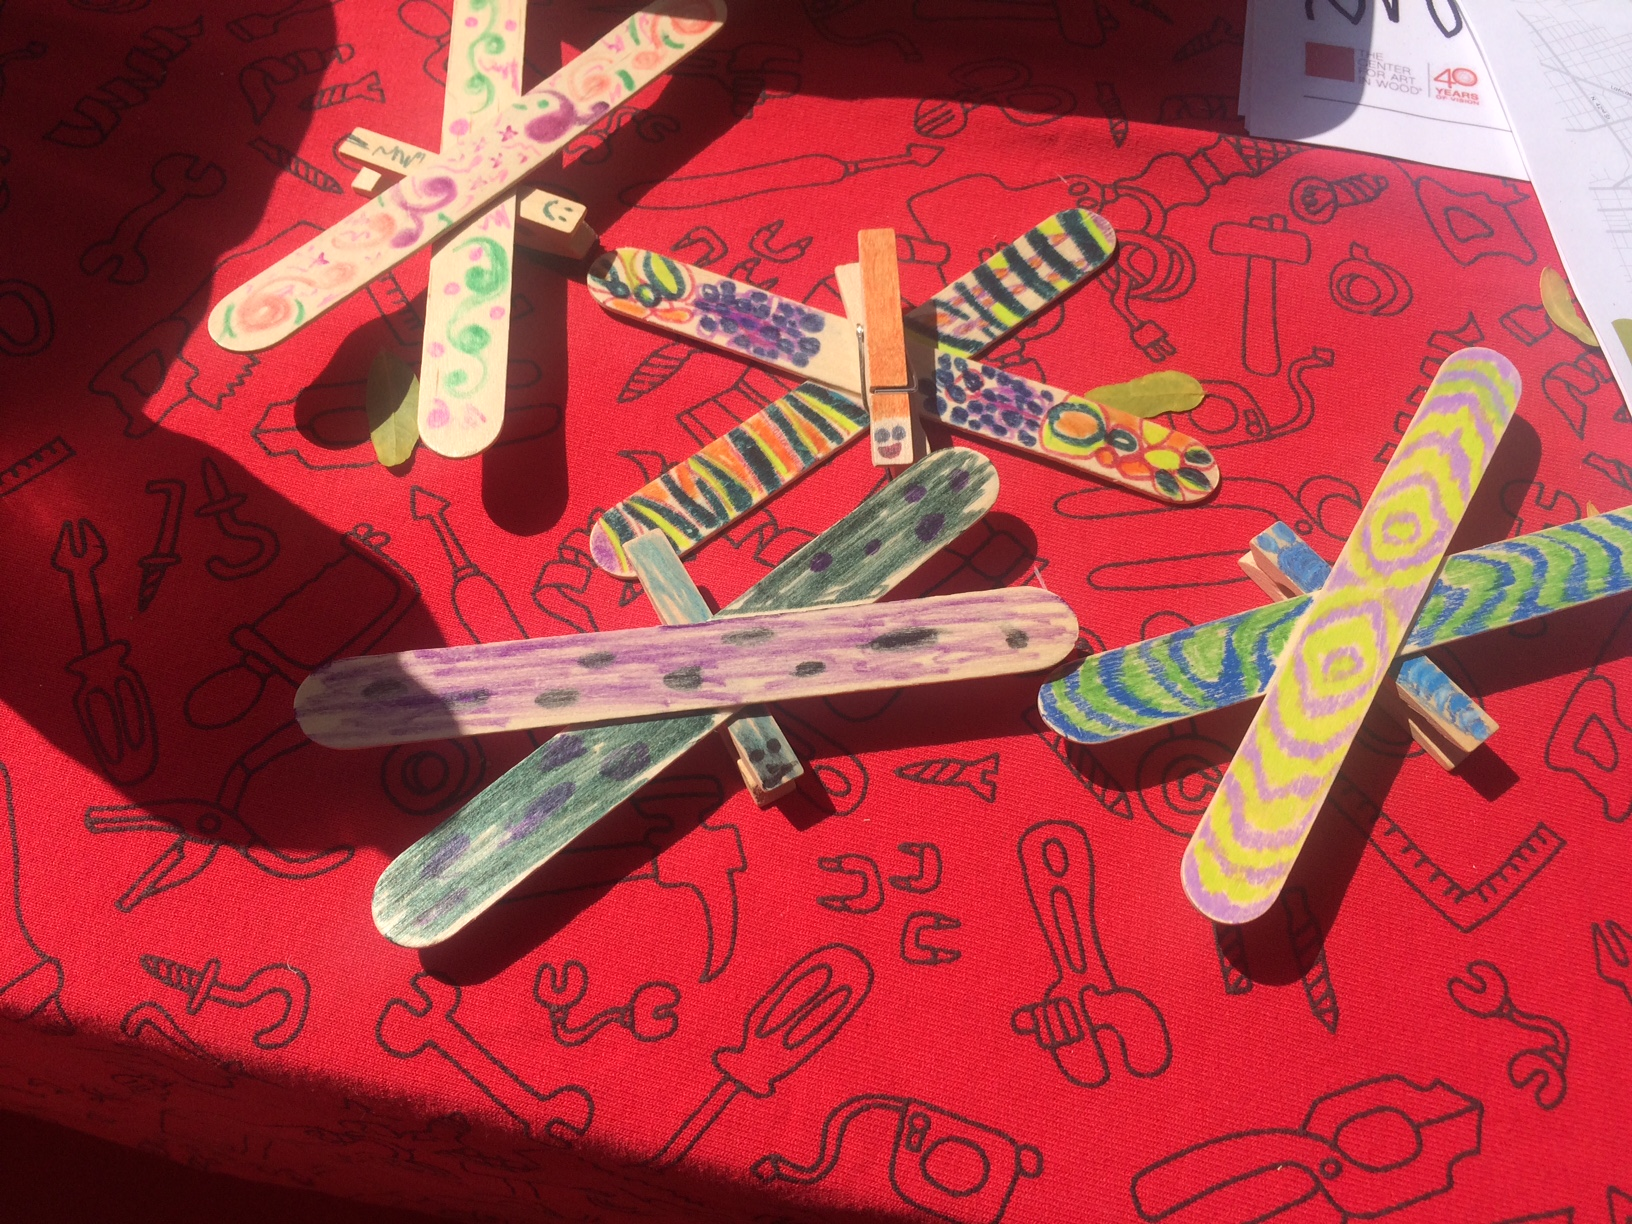 Dragonflies made by kids at the Center for Art in Wood Park(ing) Day pop-up